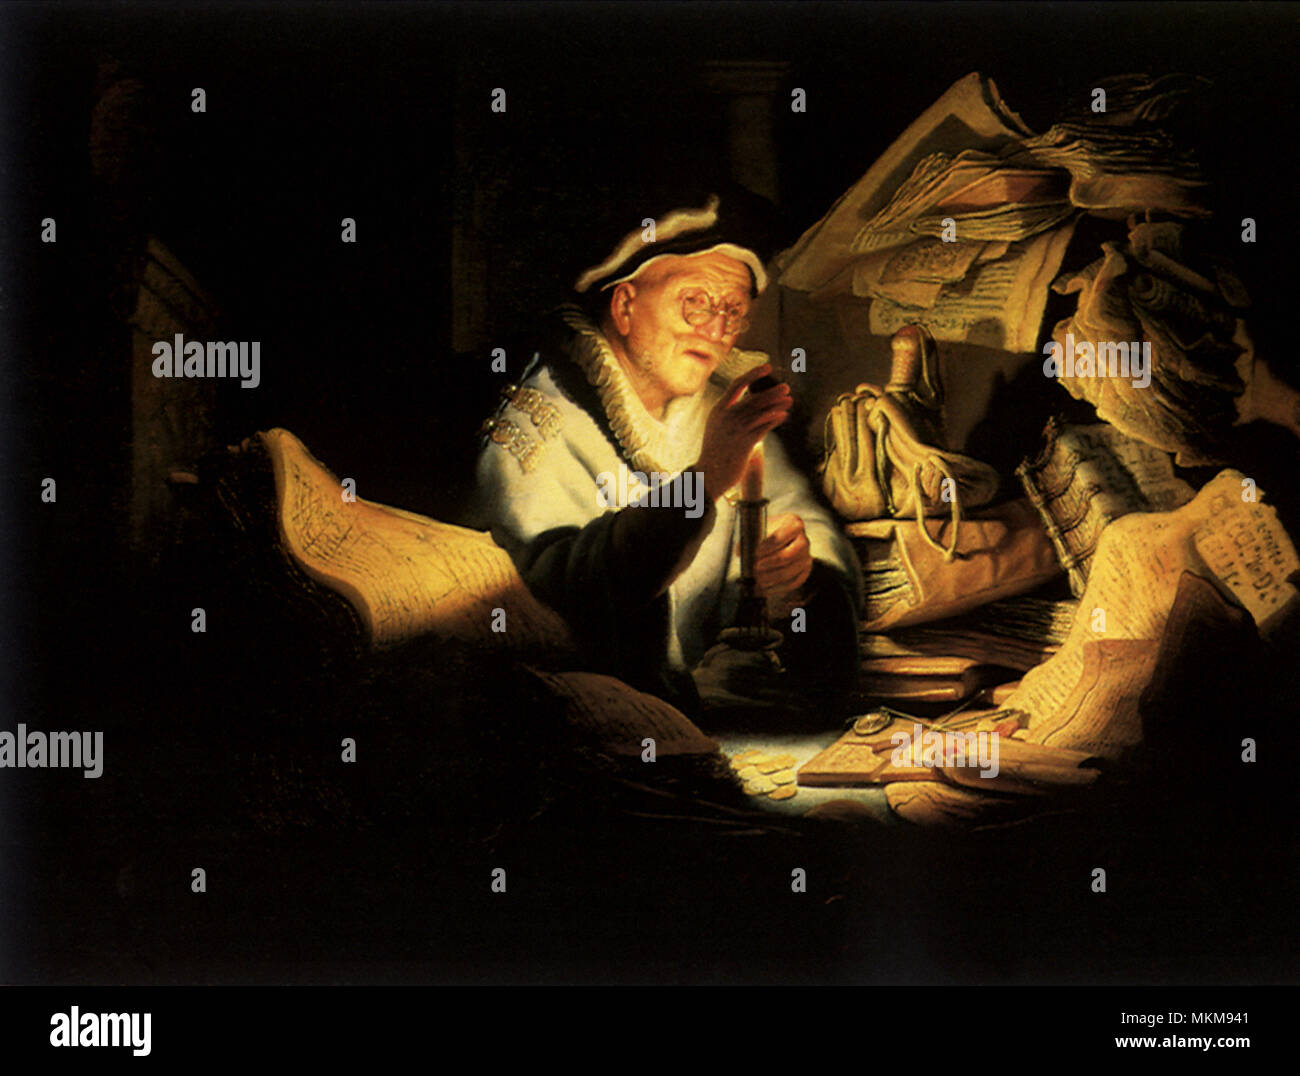 Parable of the Rich Man - Stock Image